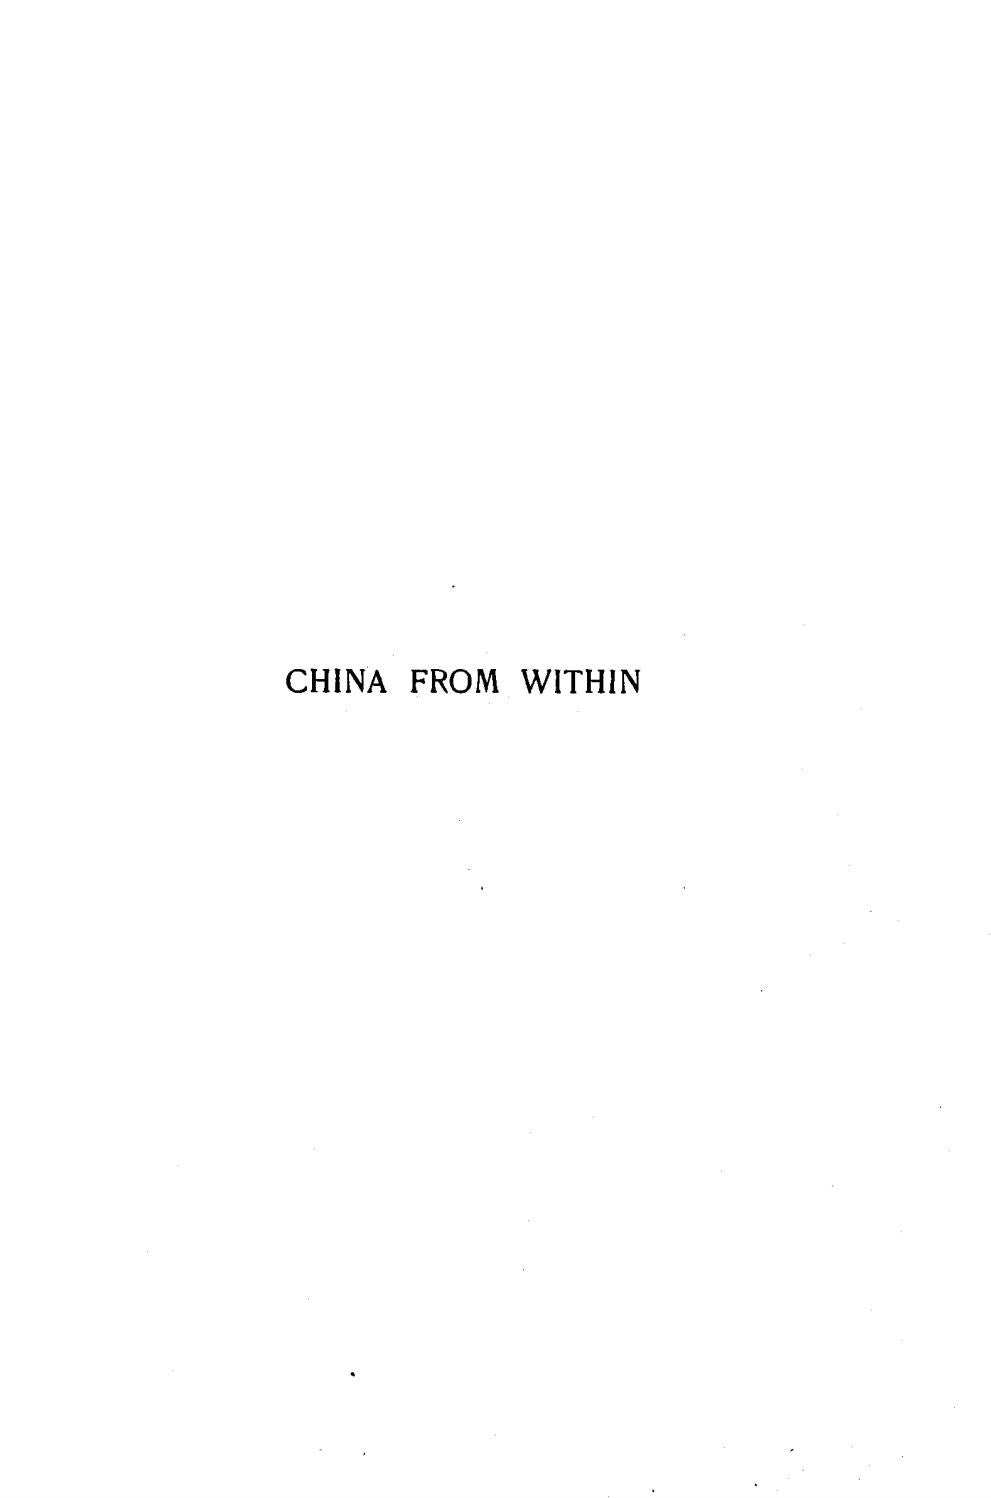 Stanley P  Smith [1861-1931], China From Within, or the Story of the